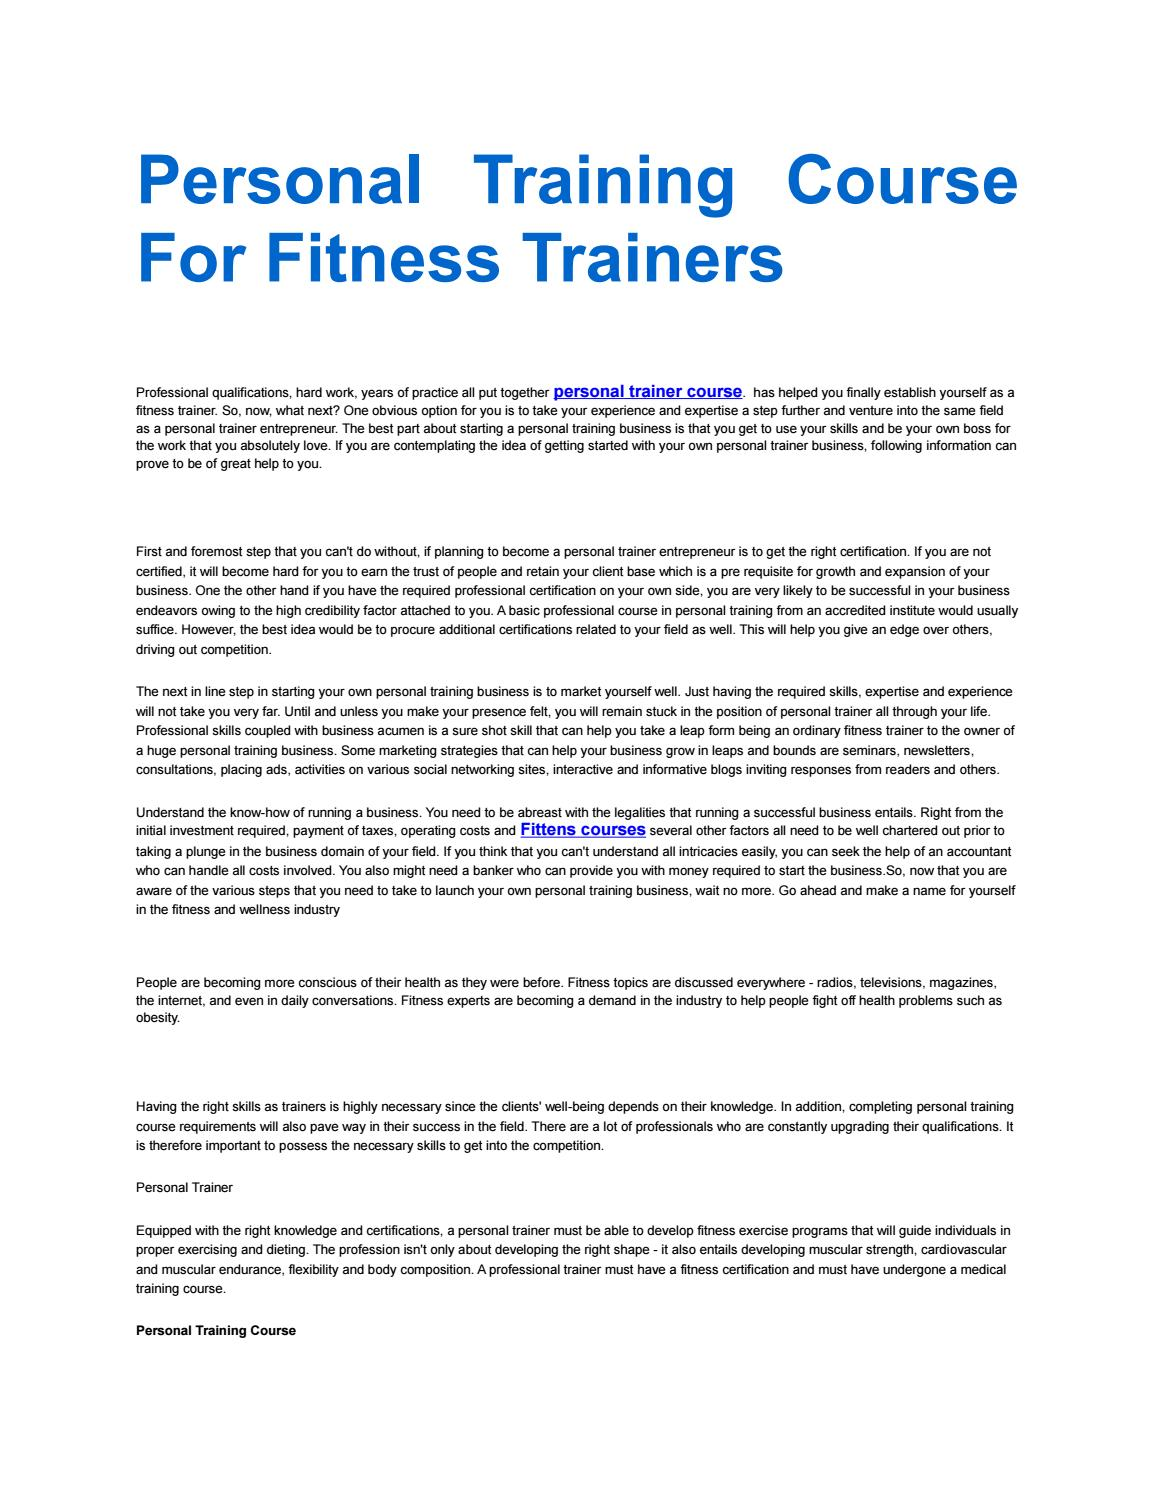 Personal Training Course For Fitness Trainers By Buy Instgaram